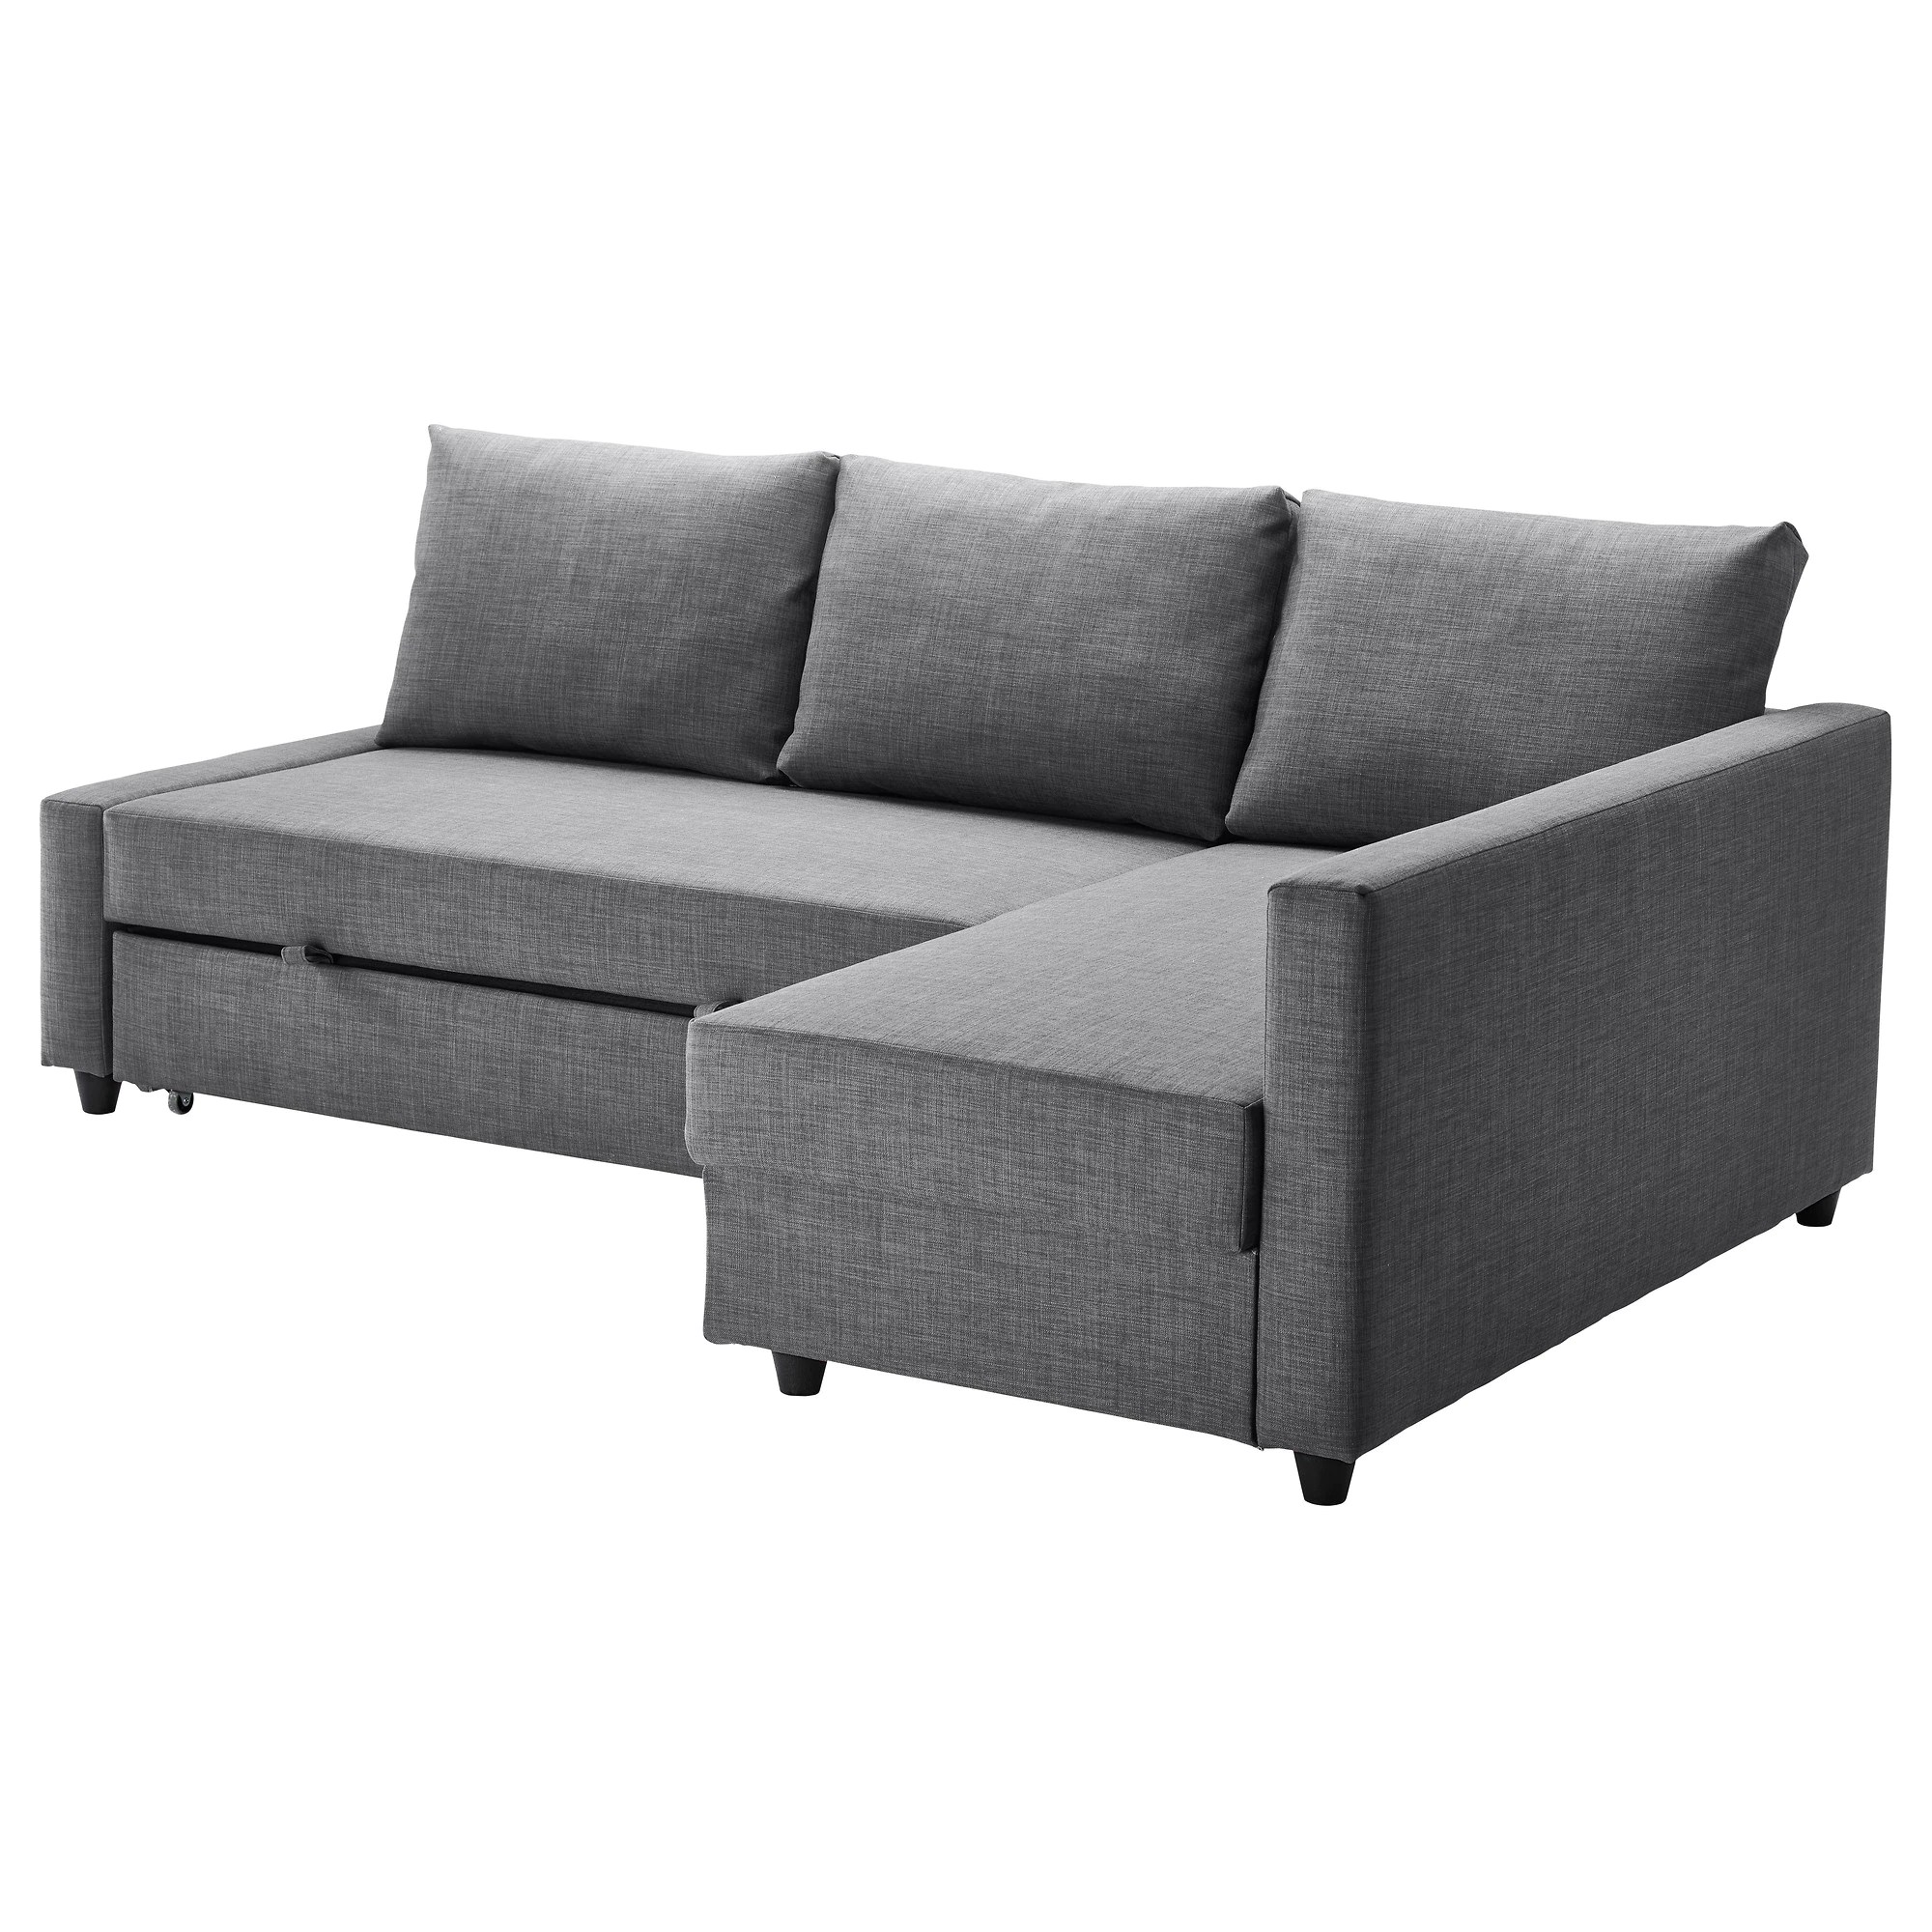 Mesa Cama Ikea Friheten Sleeper Sectional 3 Seat W Storage Skiftebo Dark Gray